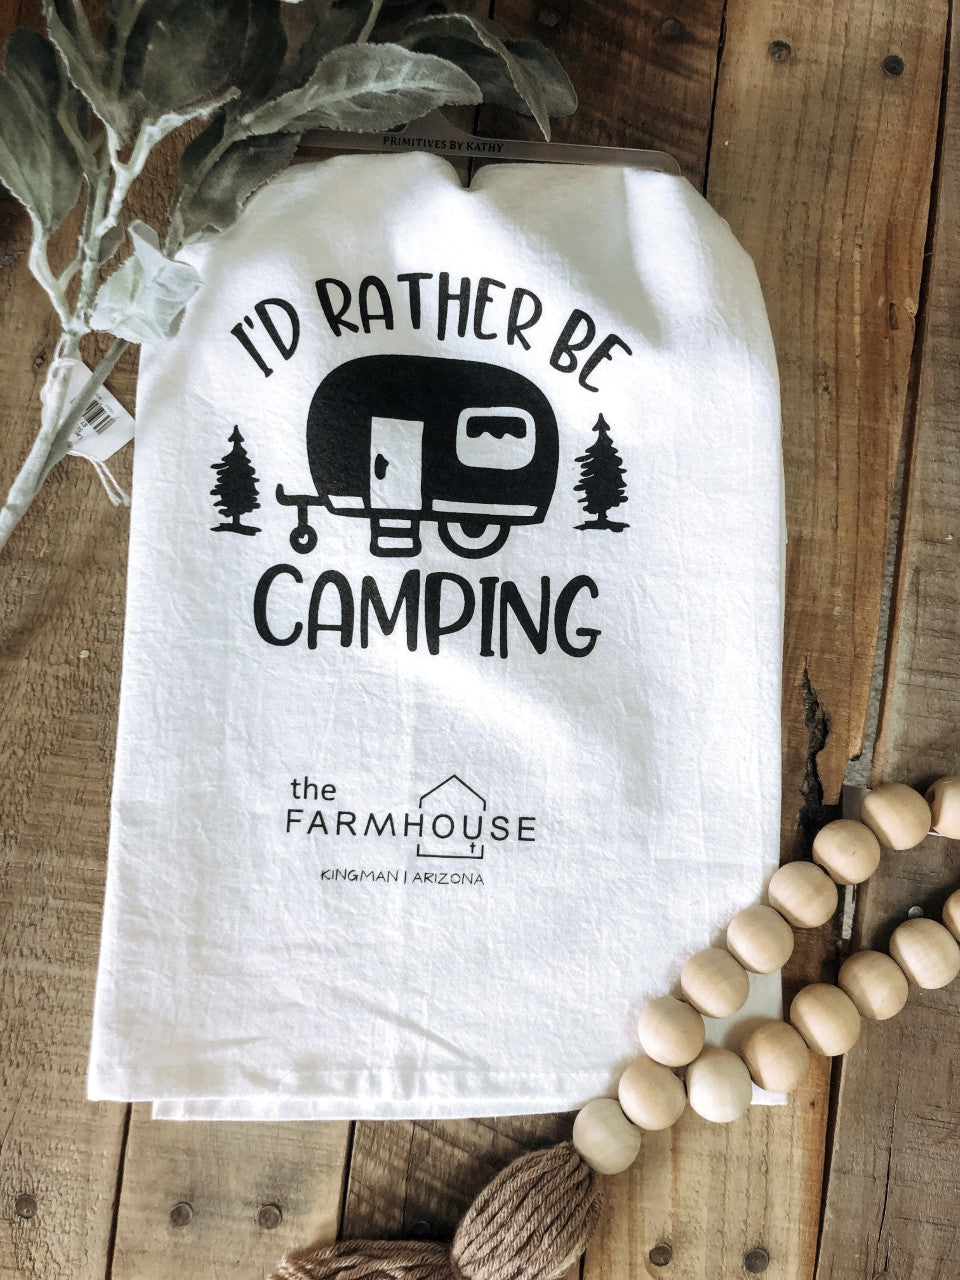 Towel Rather Be Camping